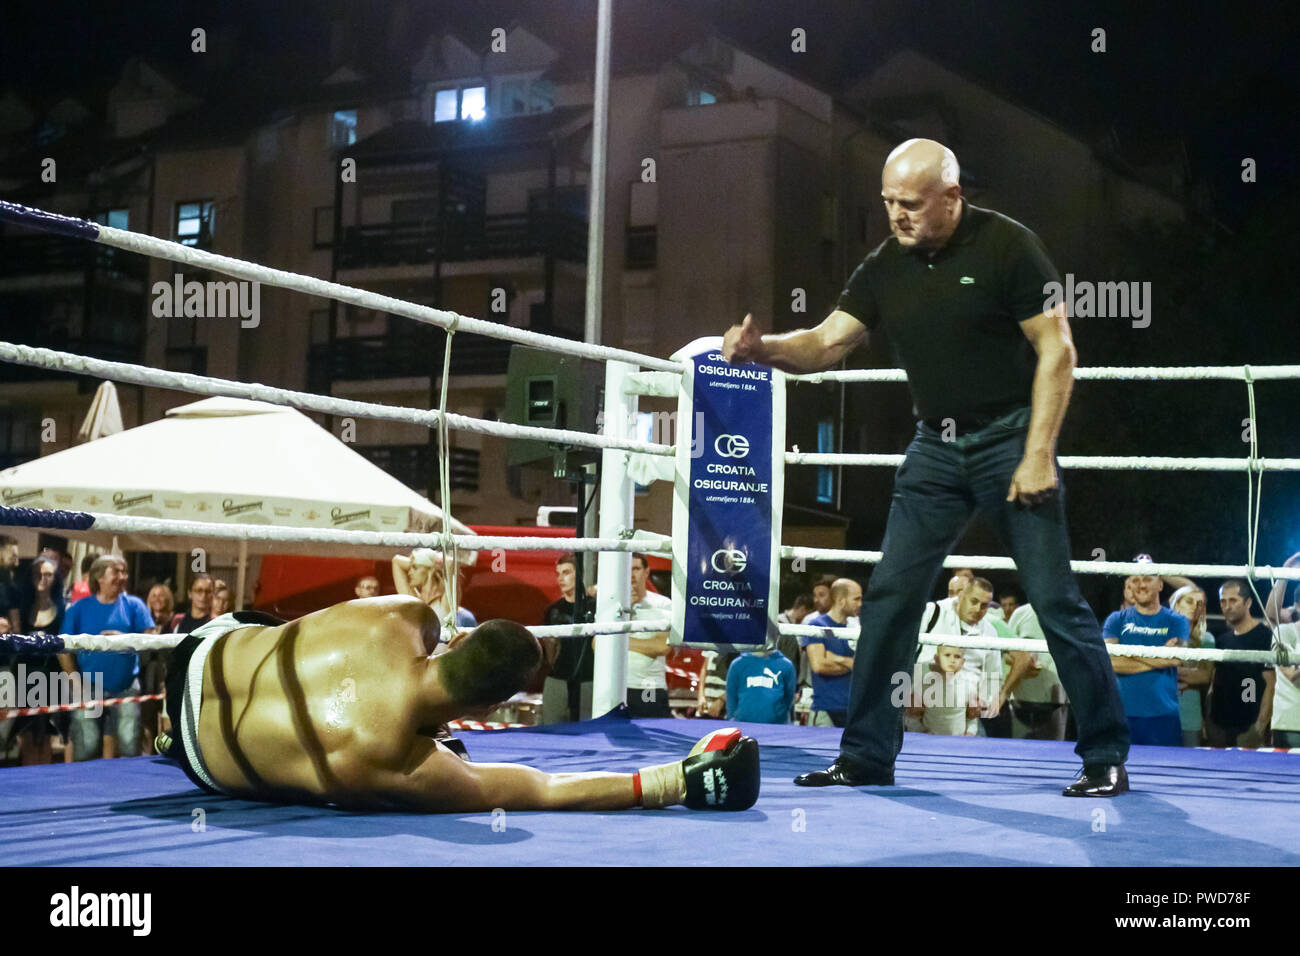 Zagreb, Croatia - 15 Sep, 2018 : Boxing match between the Croatian boxer Ivica Bacurina and Aleksandar Radivojevic from Serbia. Aleksandar Radivojevic - Stock Image